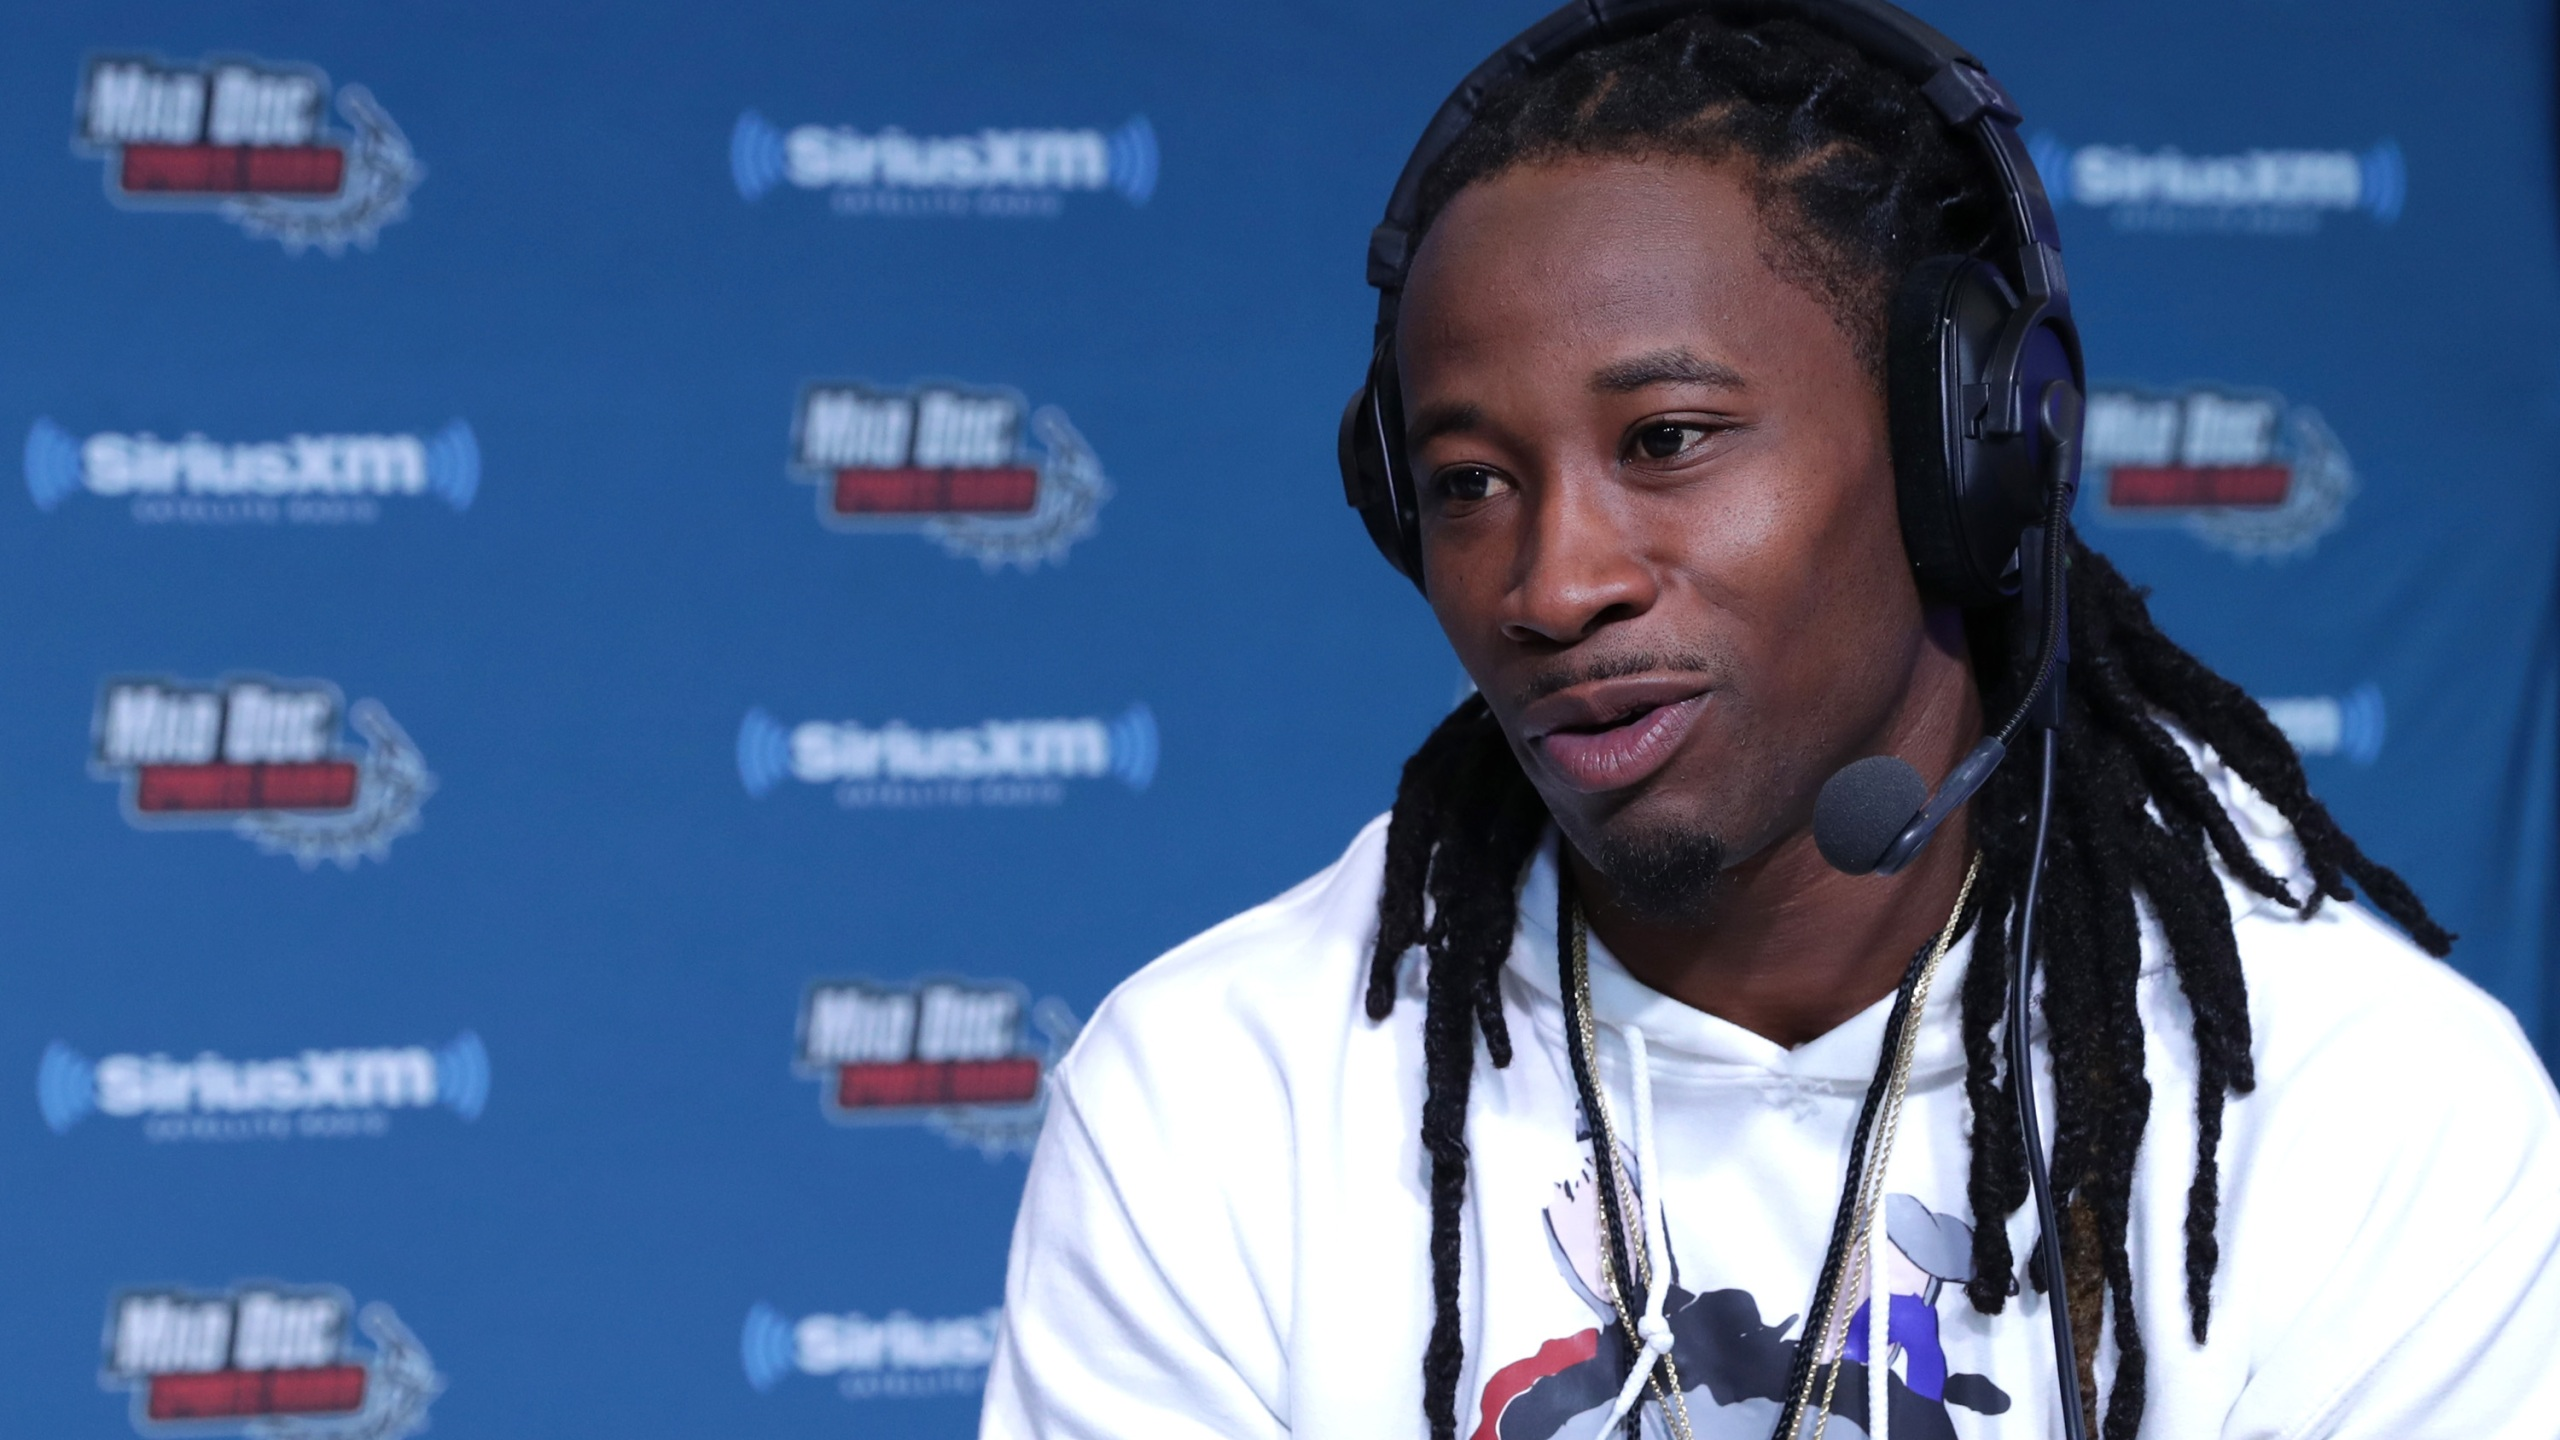 Dead body reportedly found at home of NY Giants' Janoris Jenkins